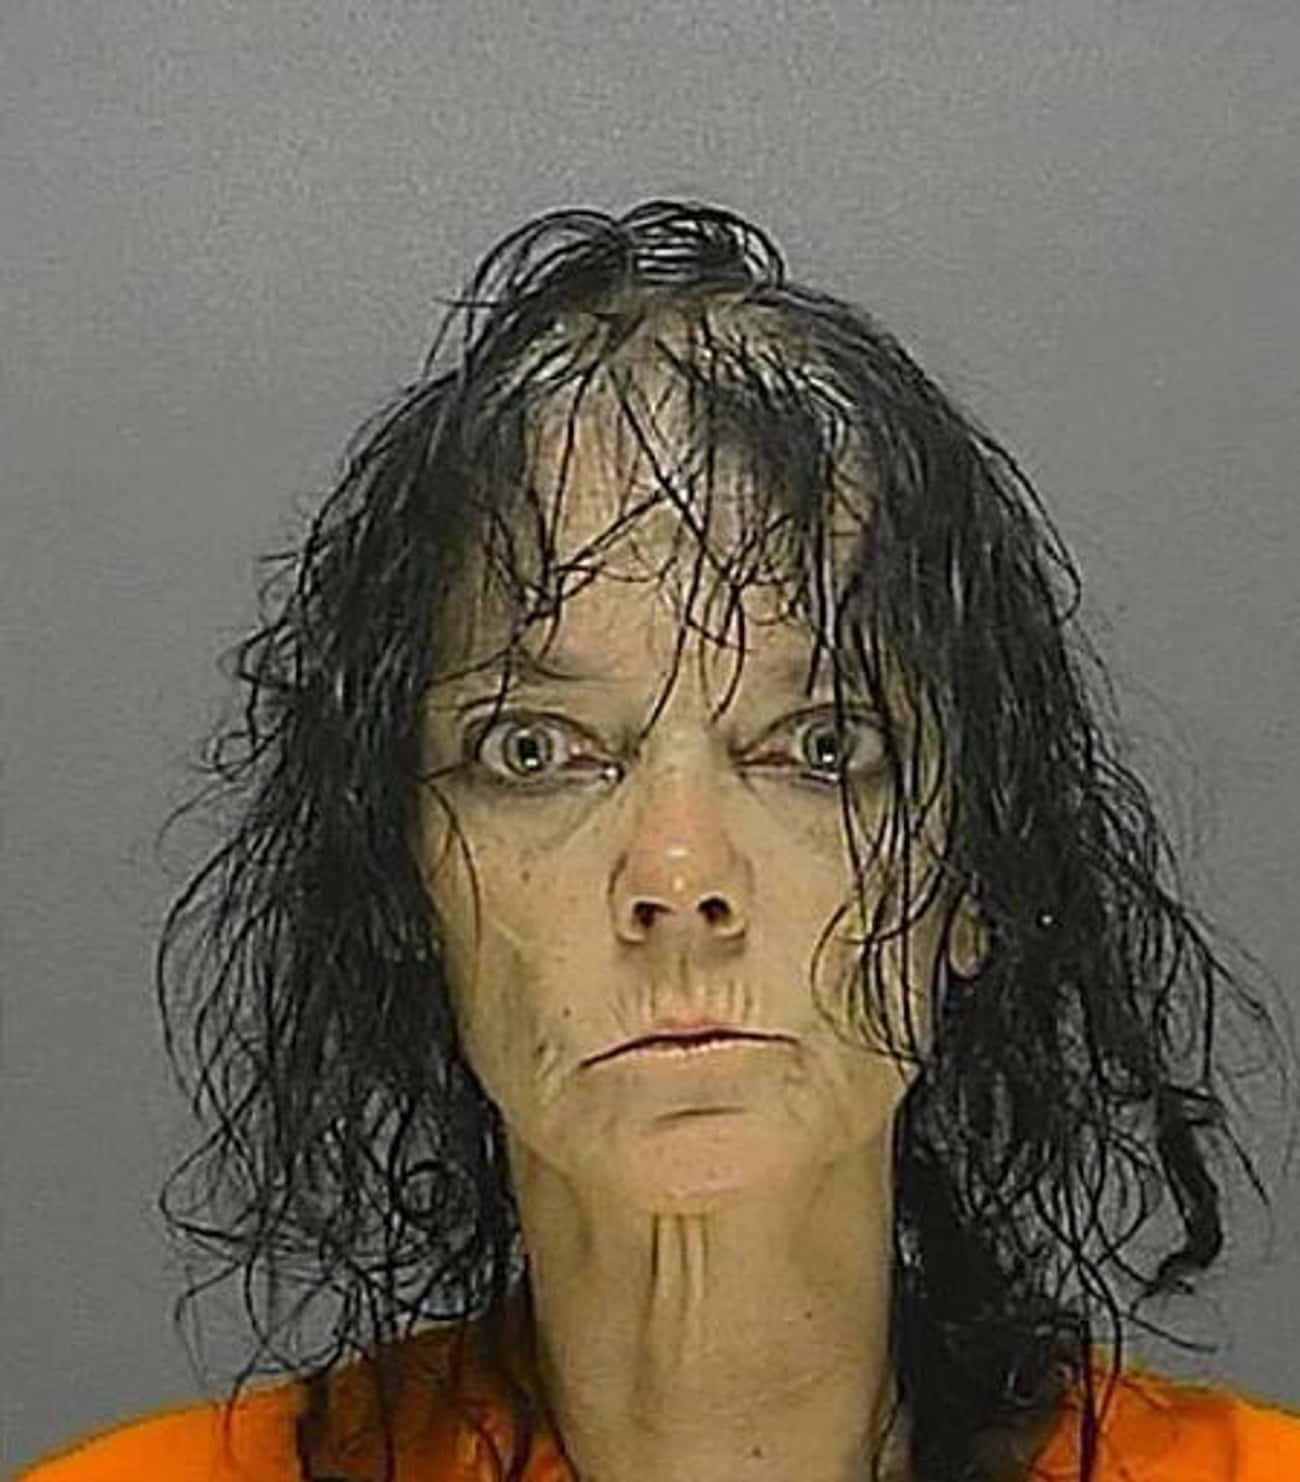 Modern Day Medusa is listed (or ranked) 2 on the list 28 Hilarious Florida Mugshots